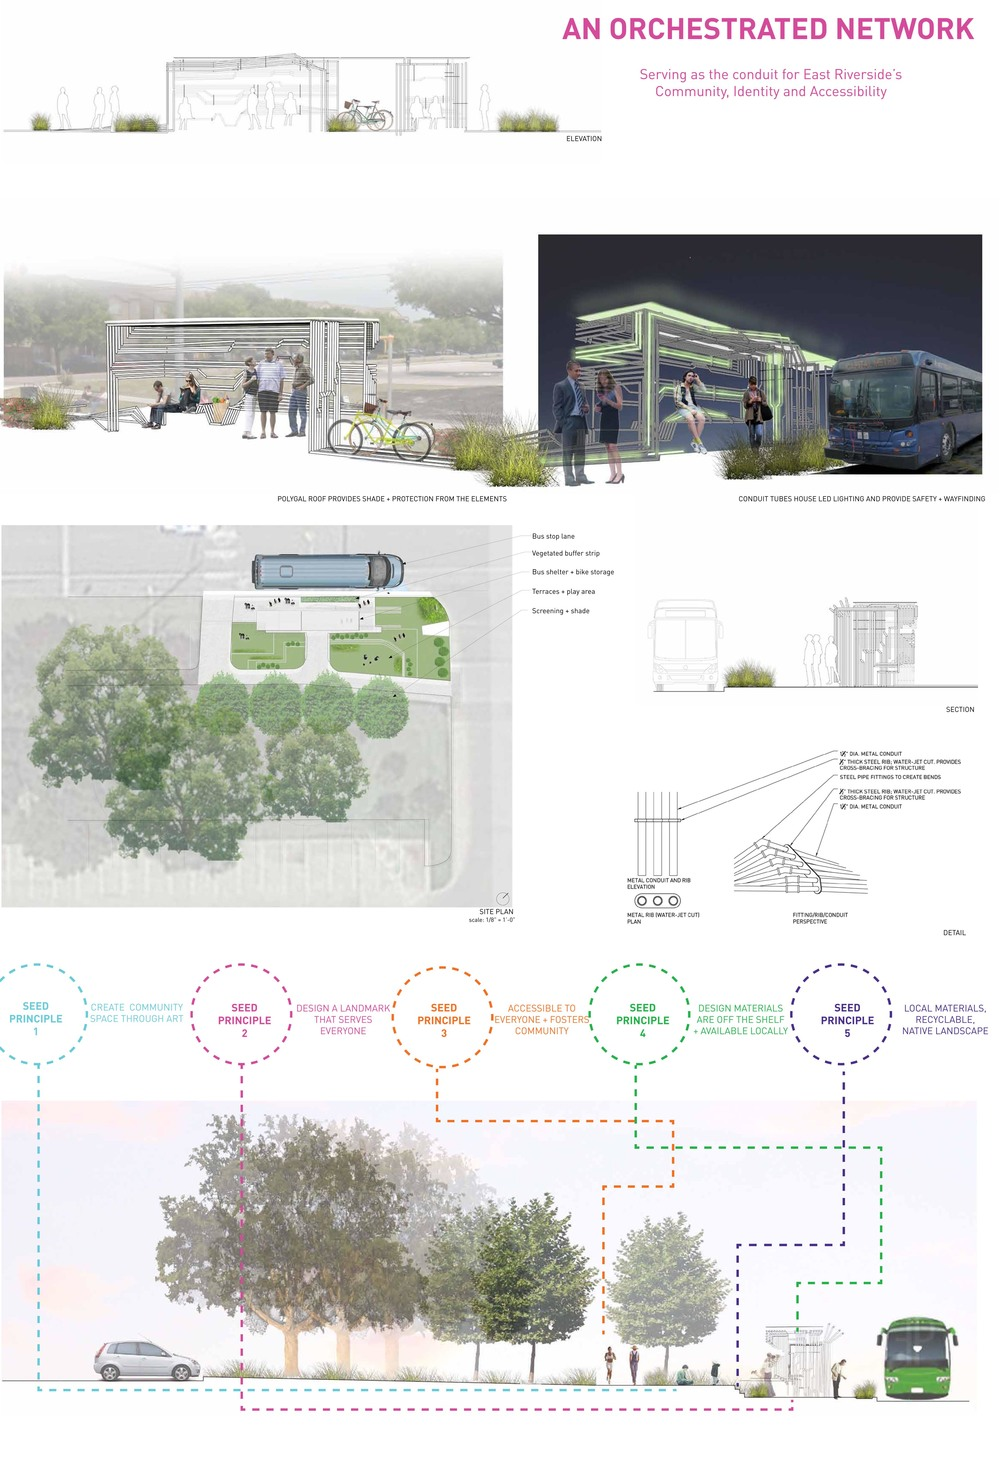 Westshop + Yancy Studio teamed up for the AIA and Capital Metro bus shelter competition in September.  A big thank you to the jurors and the fellow design teams.  It was a great way to spend a Saturday.